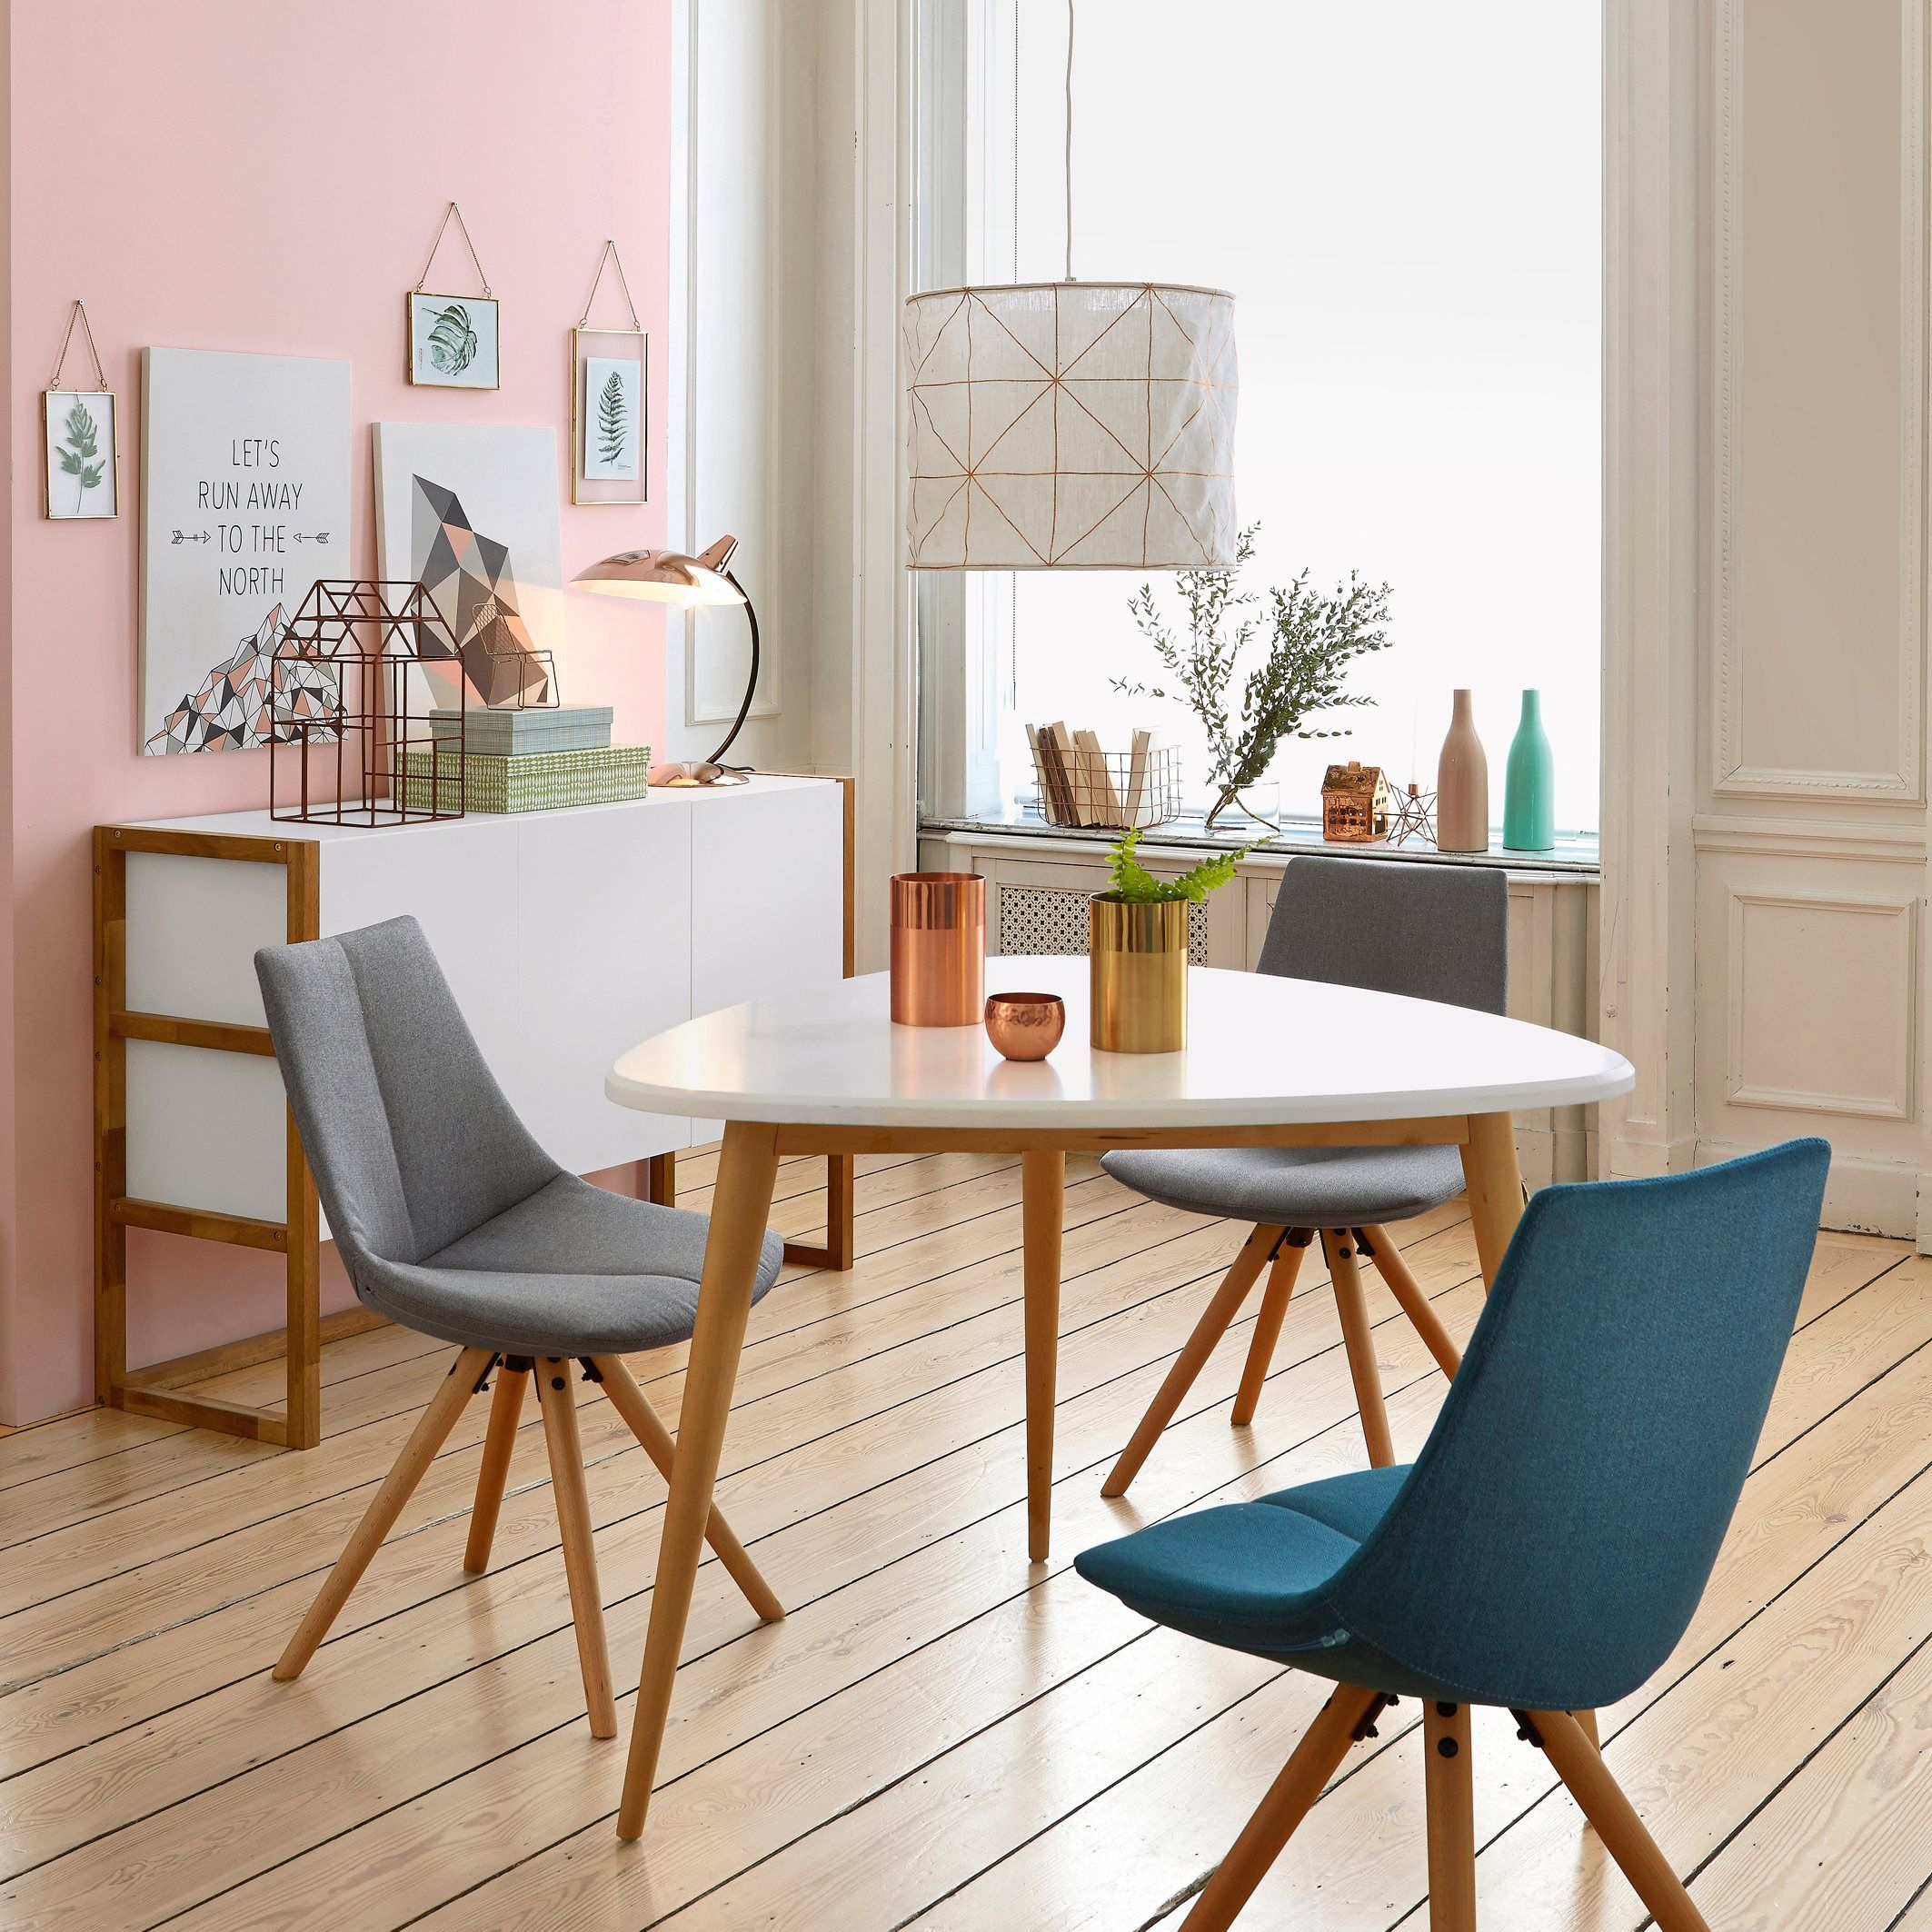 Jimi 3 Seater Dining Table Dining Room Small Dining Table